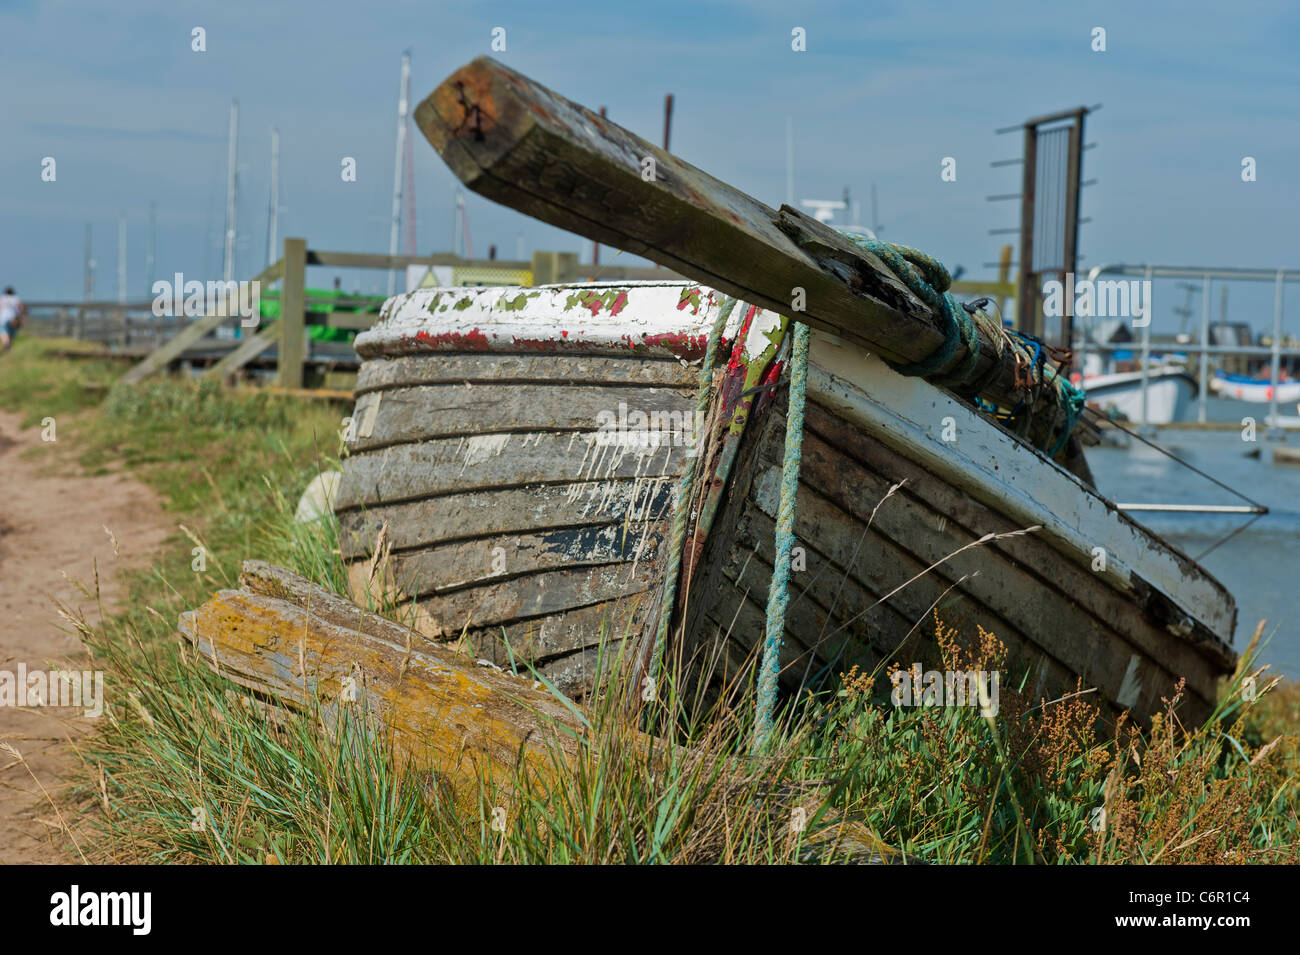 Rowing boat marooned on riverbank UK Boats - Stock Image